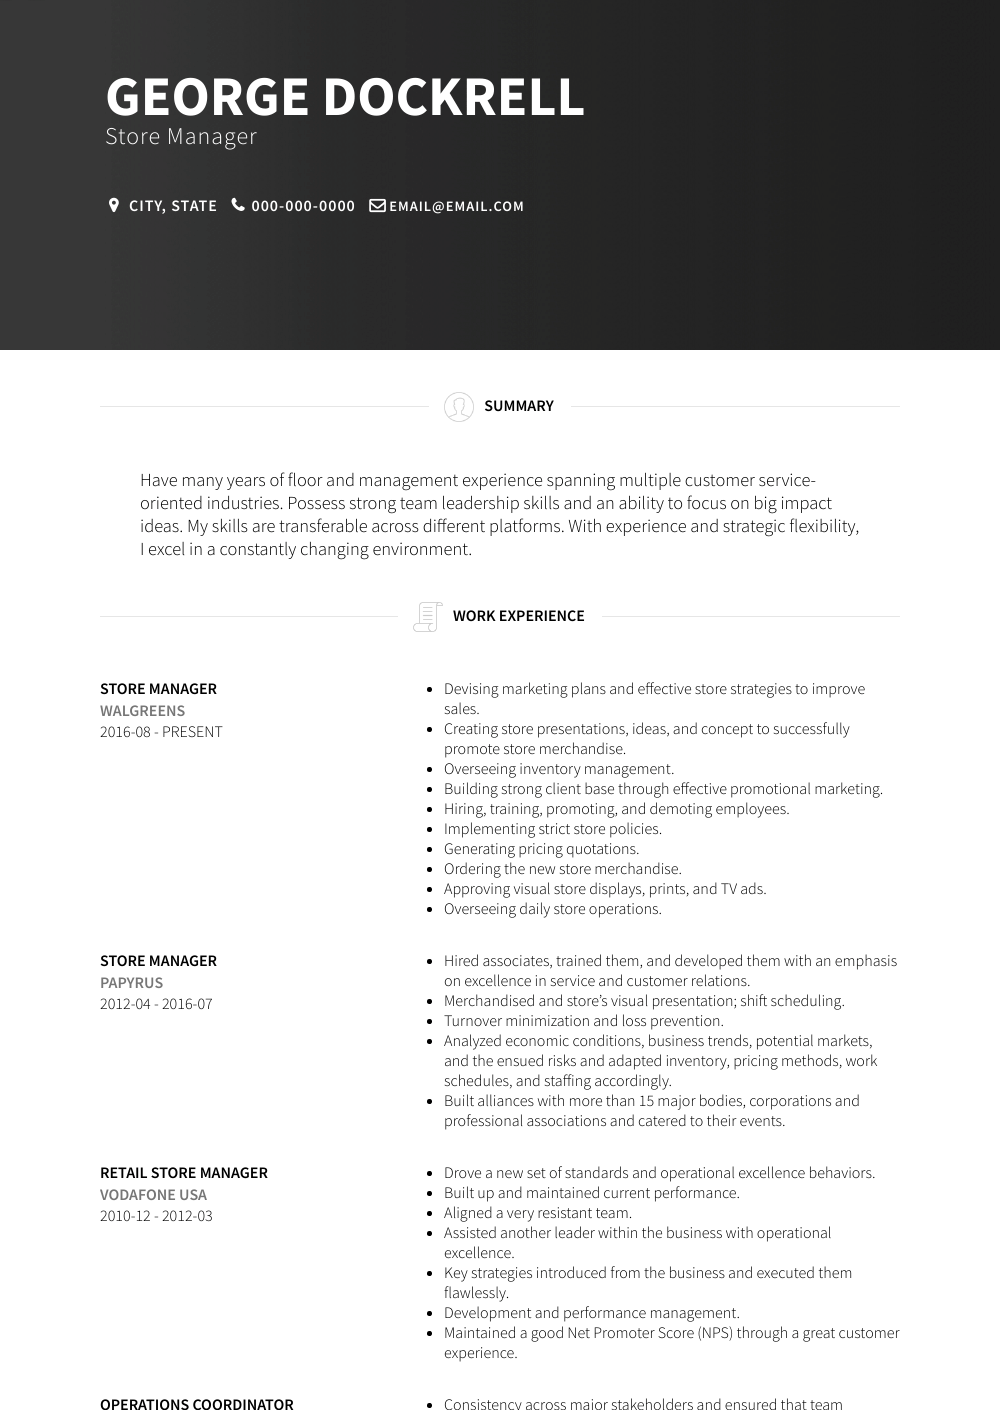 Store Manager Resume Sample and Template